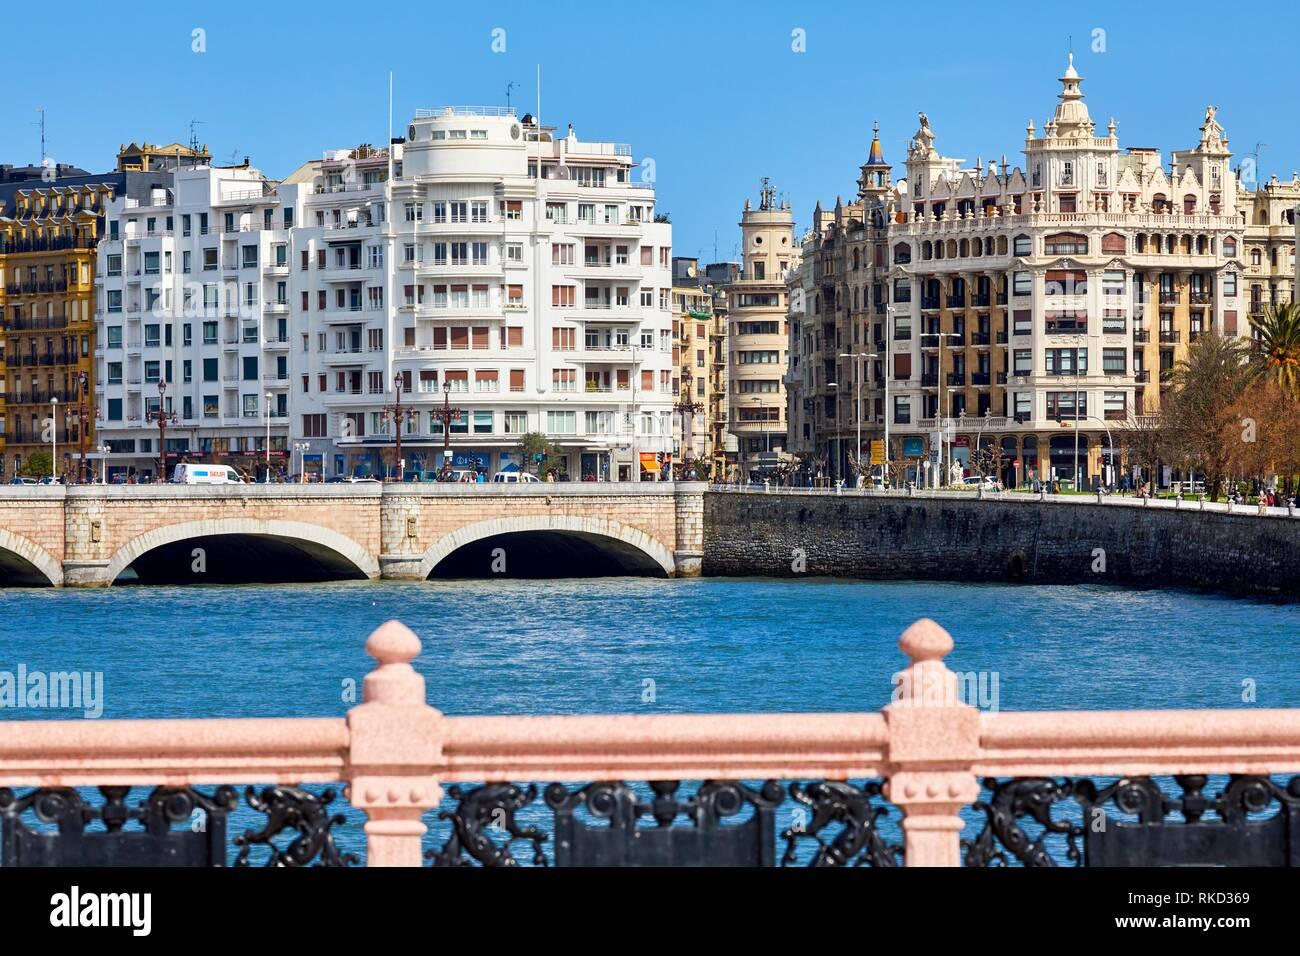 Urumea River, Santa Catalina and Maria Cristina bridges, Donostia, San Sebastian, Gipuzkoa, Basque Country, Spain, Europe - Stock Image